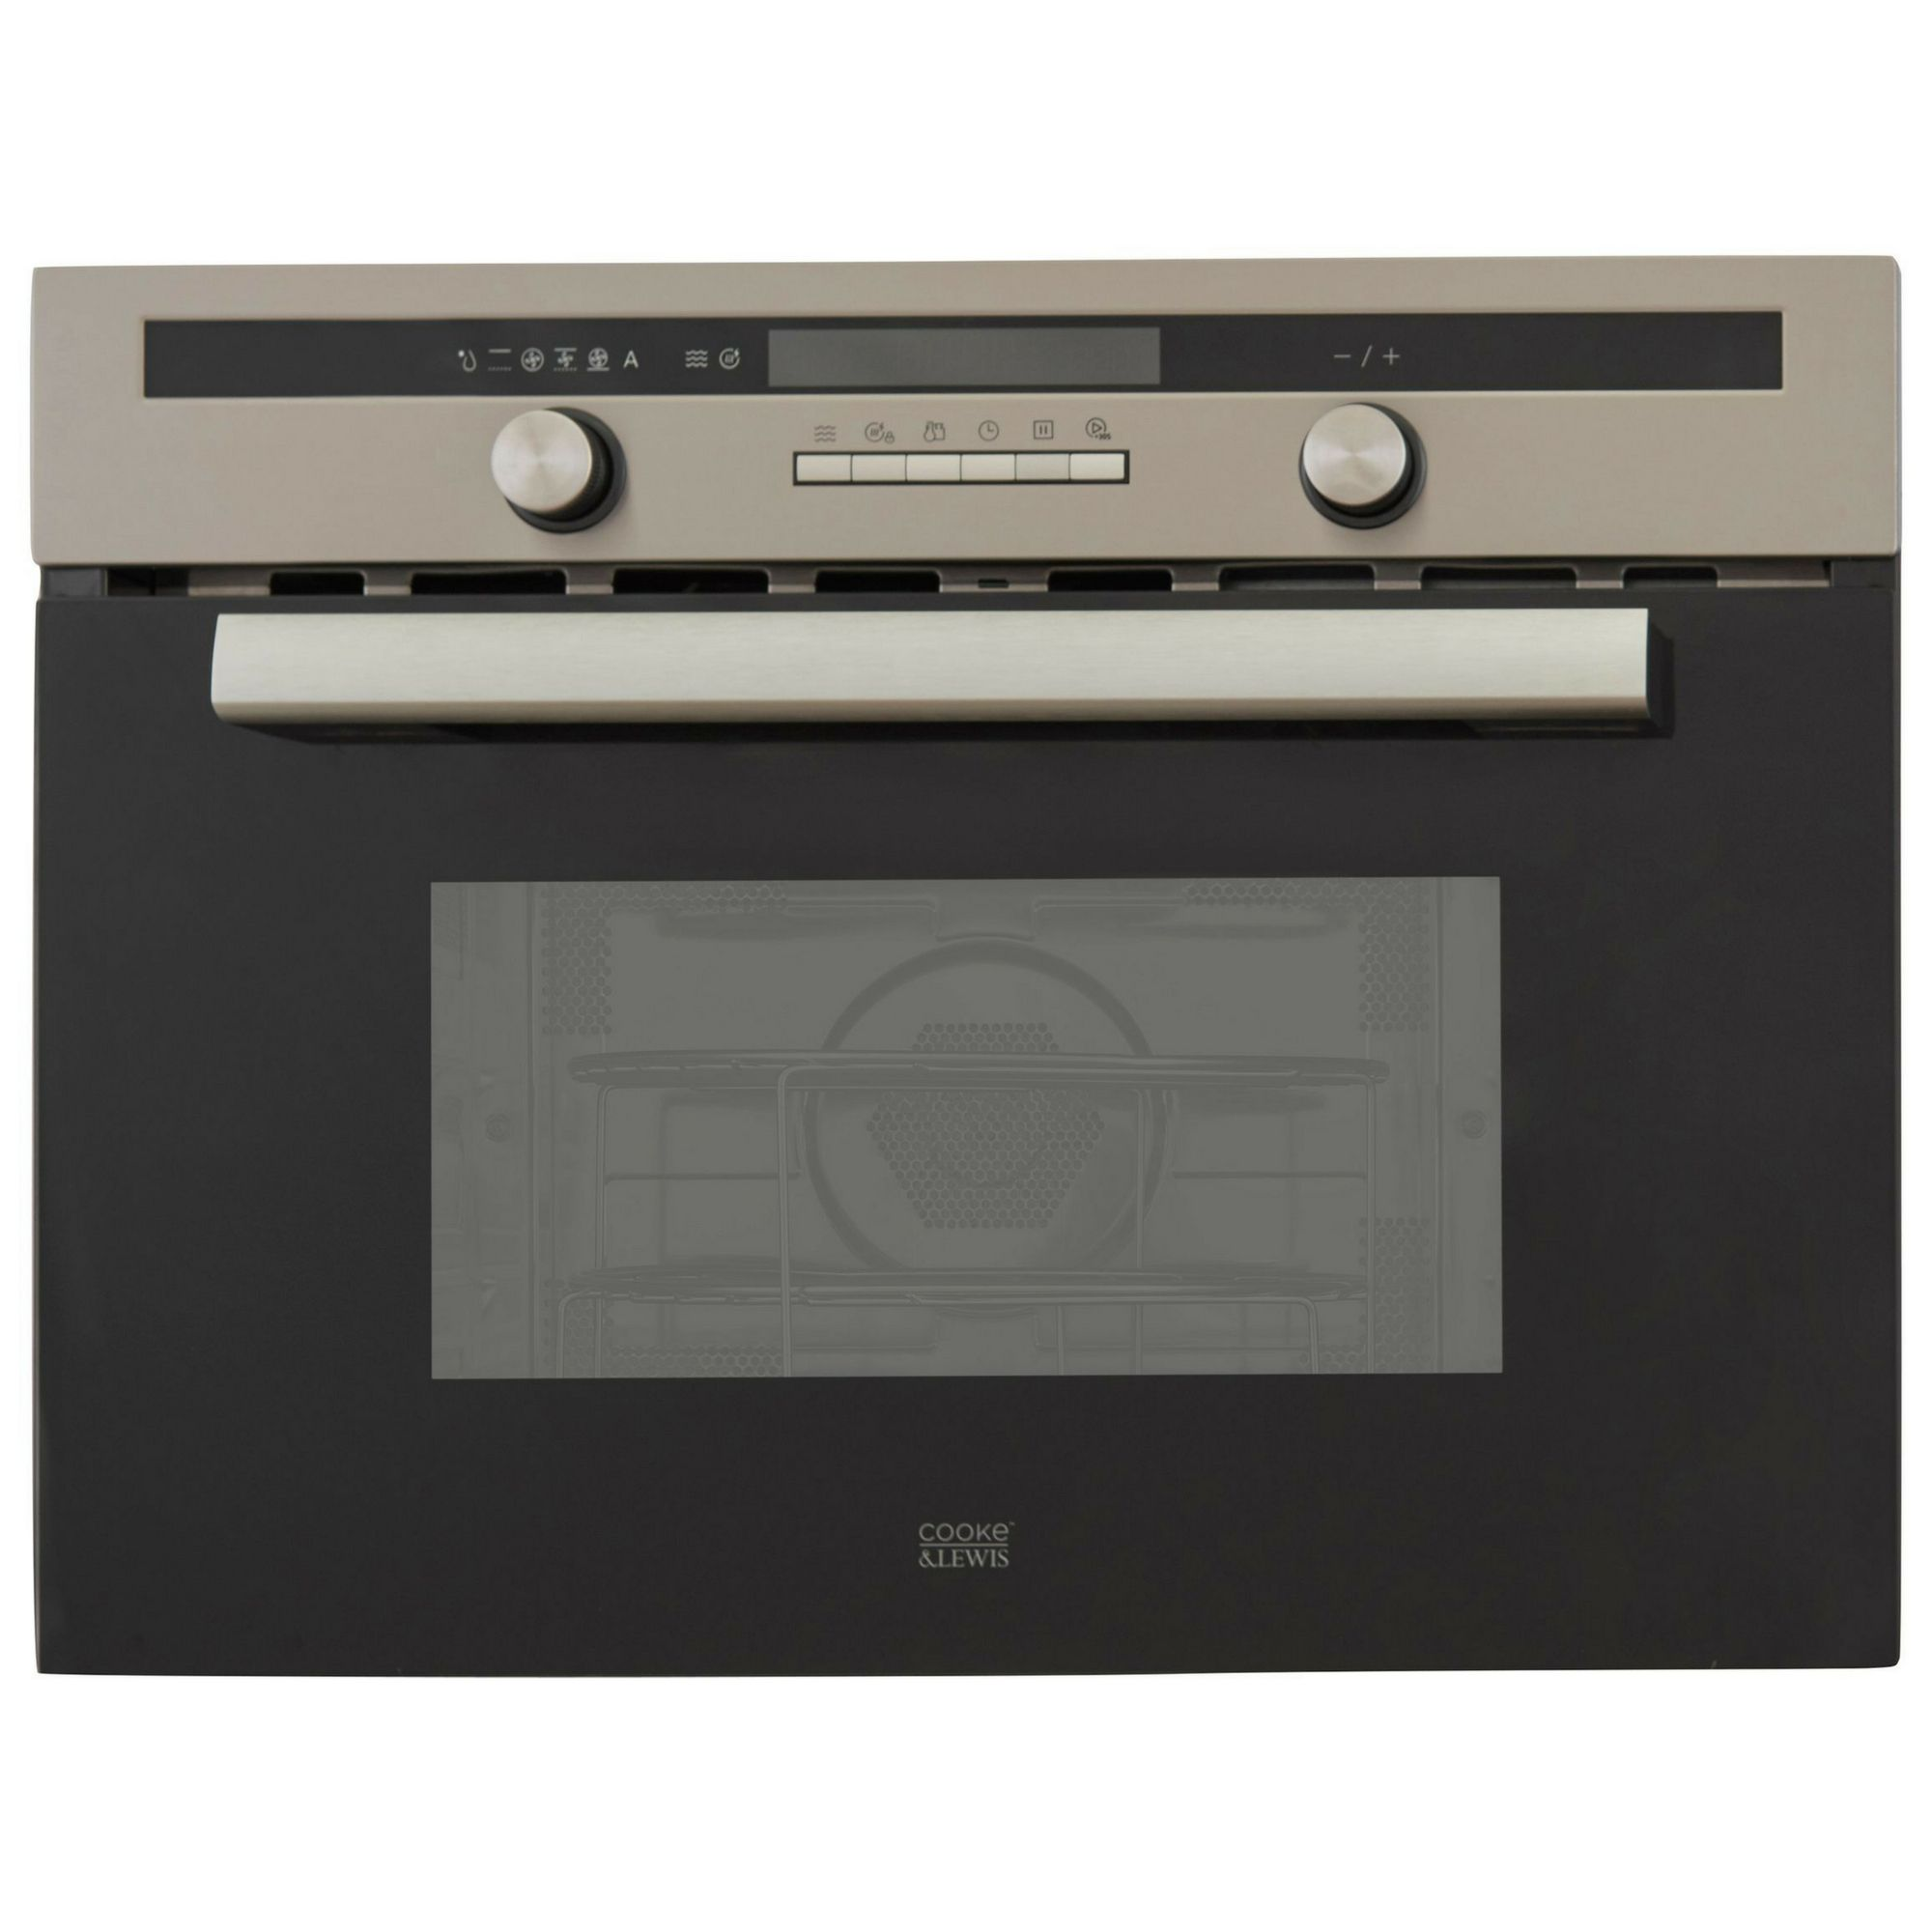 Cooke Lewis Clpyst Stainless Steel Single Pyrolytic Oven